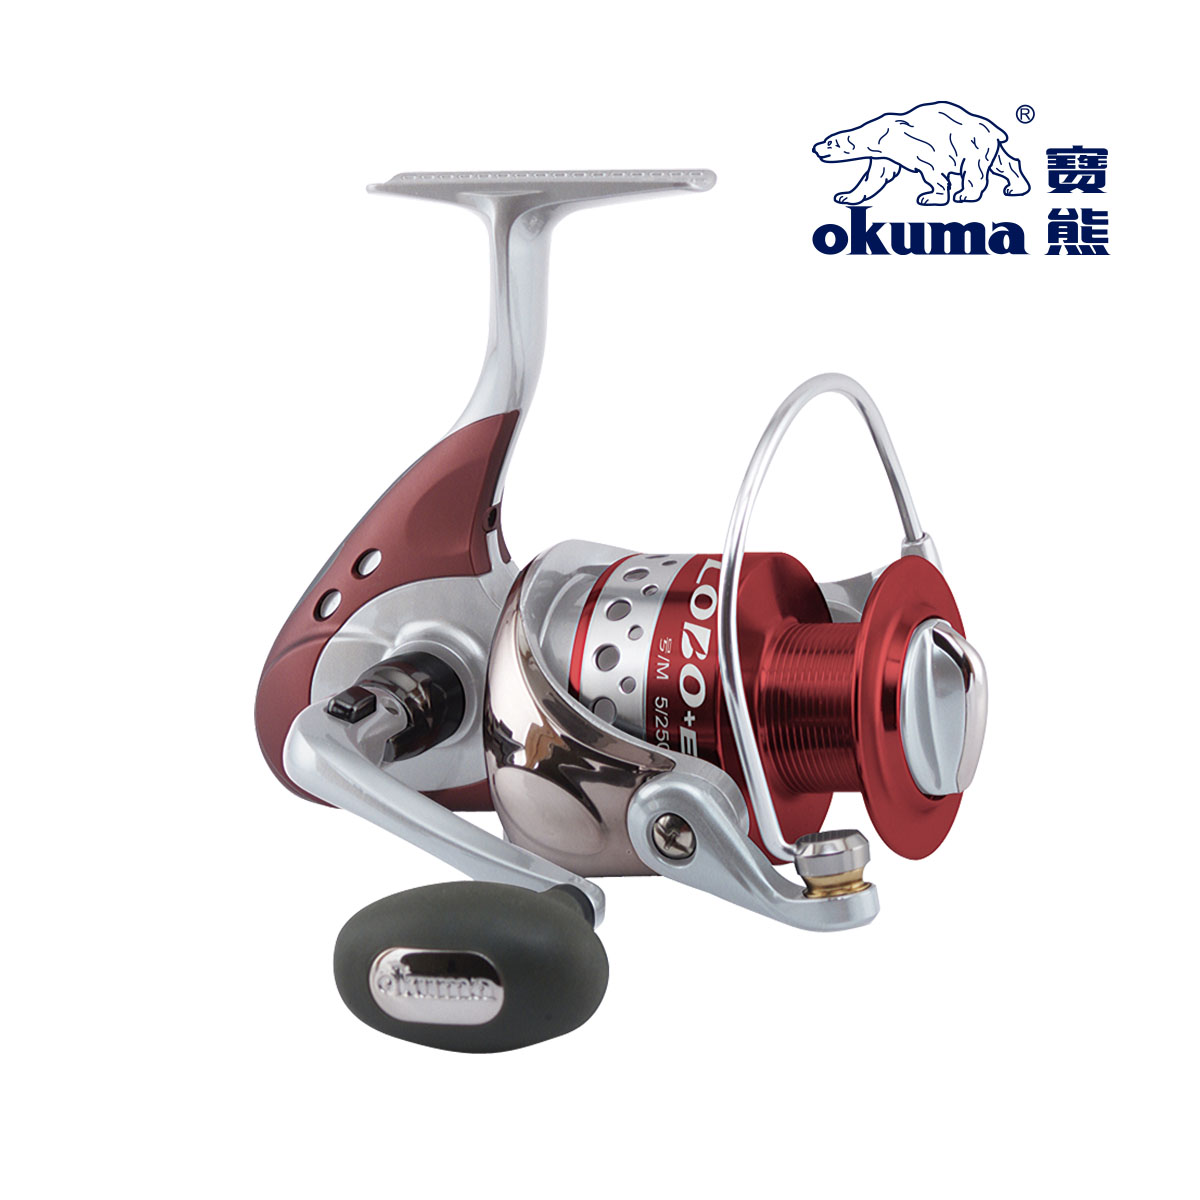 Fishing tackle okuma fishing tackle fishing vessel wheel spinning reel gray wolf loe-4000<br><br>Aliexpress